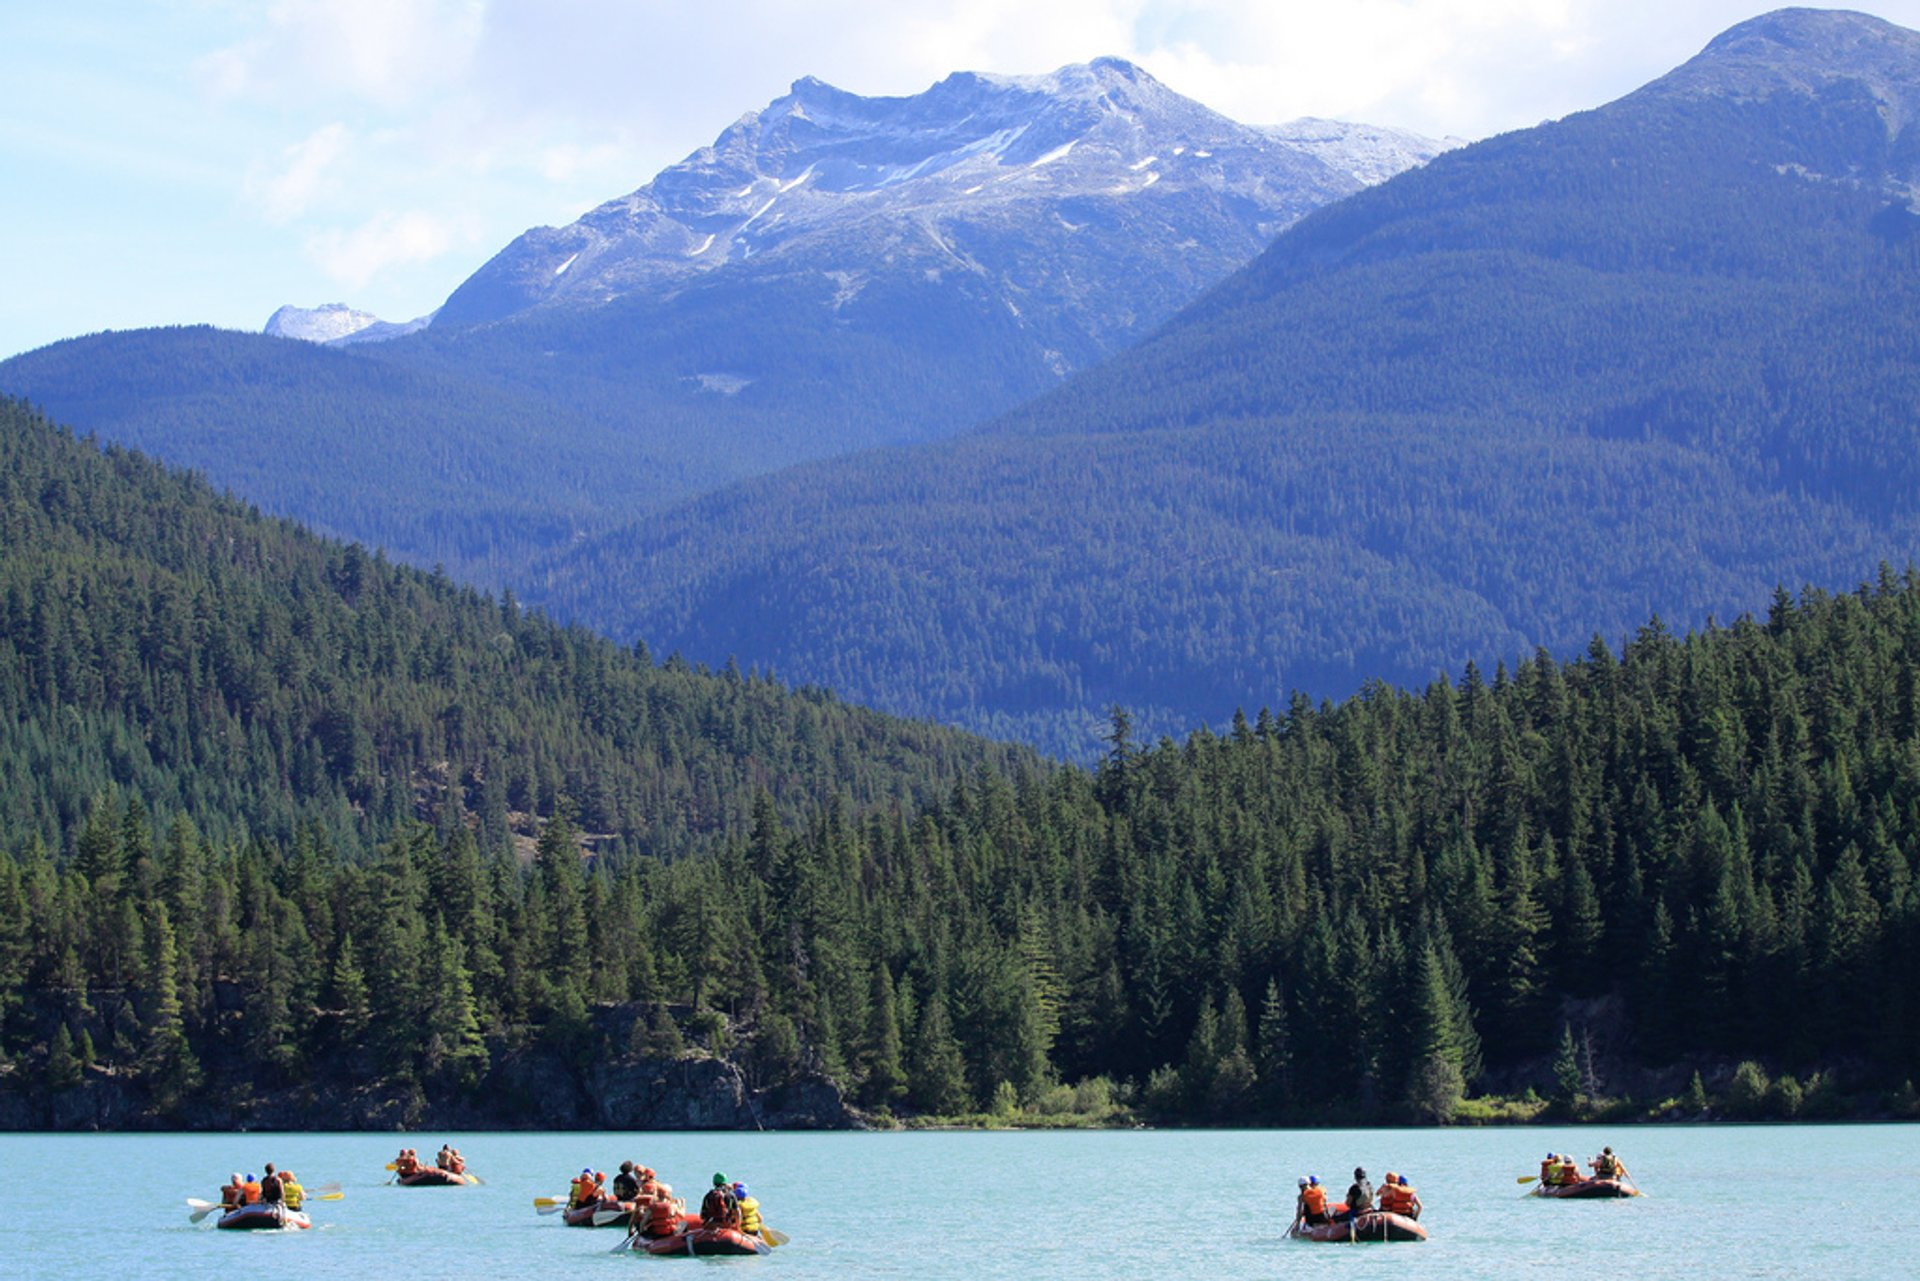 Green River Whitewater Rafting @ Whistler 2020